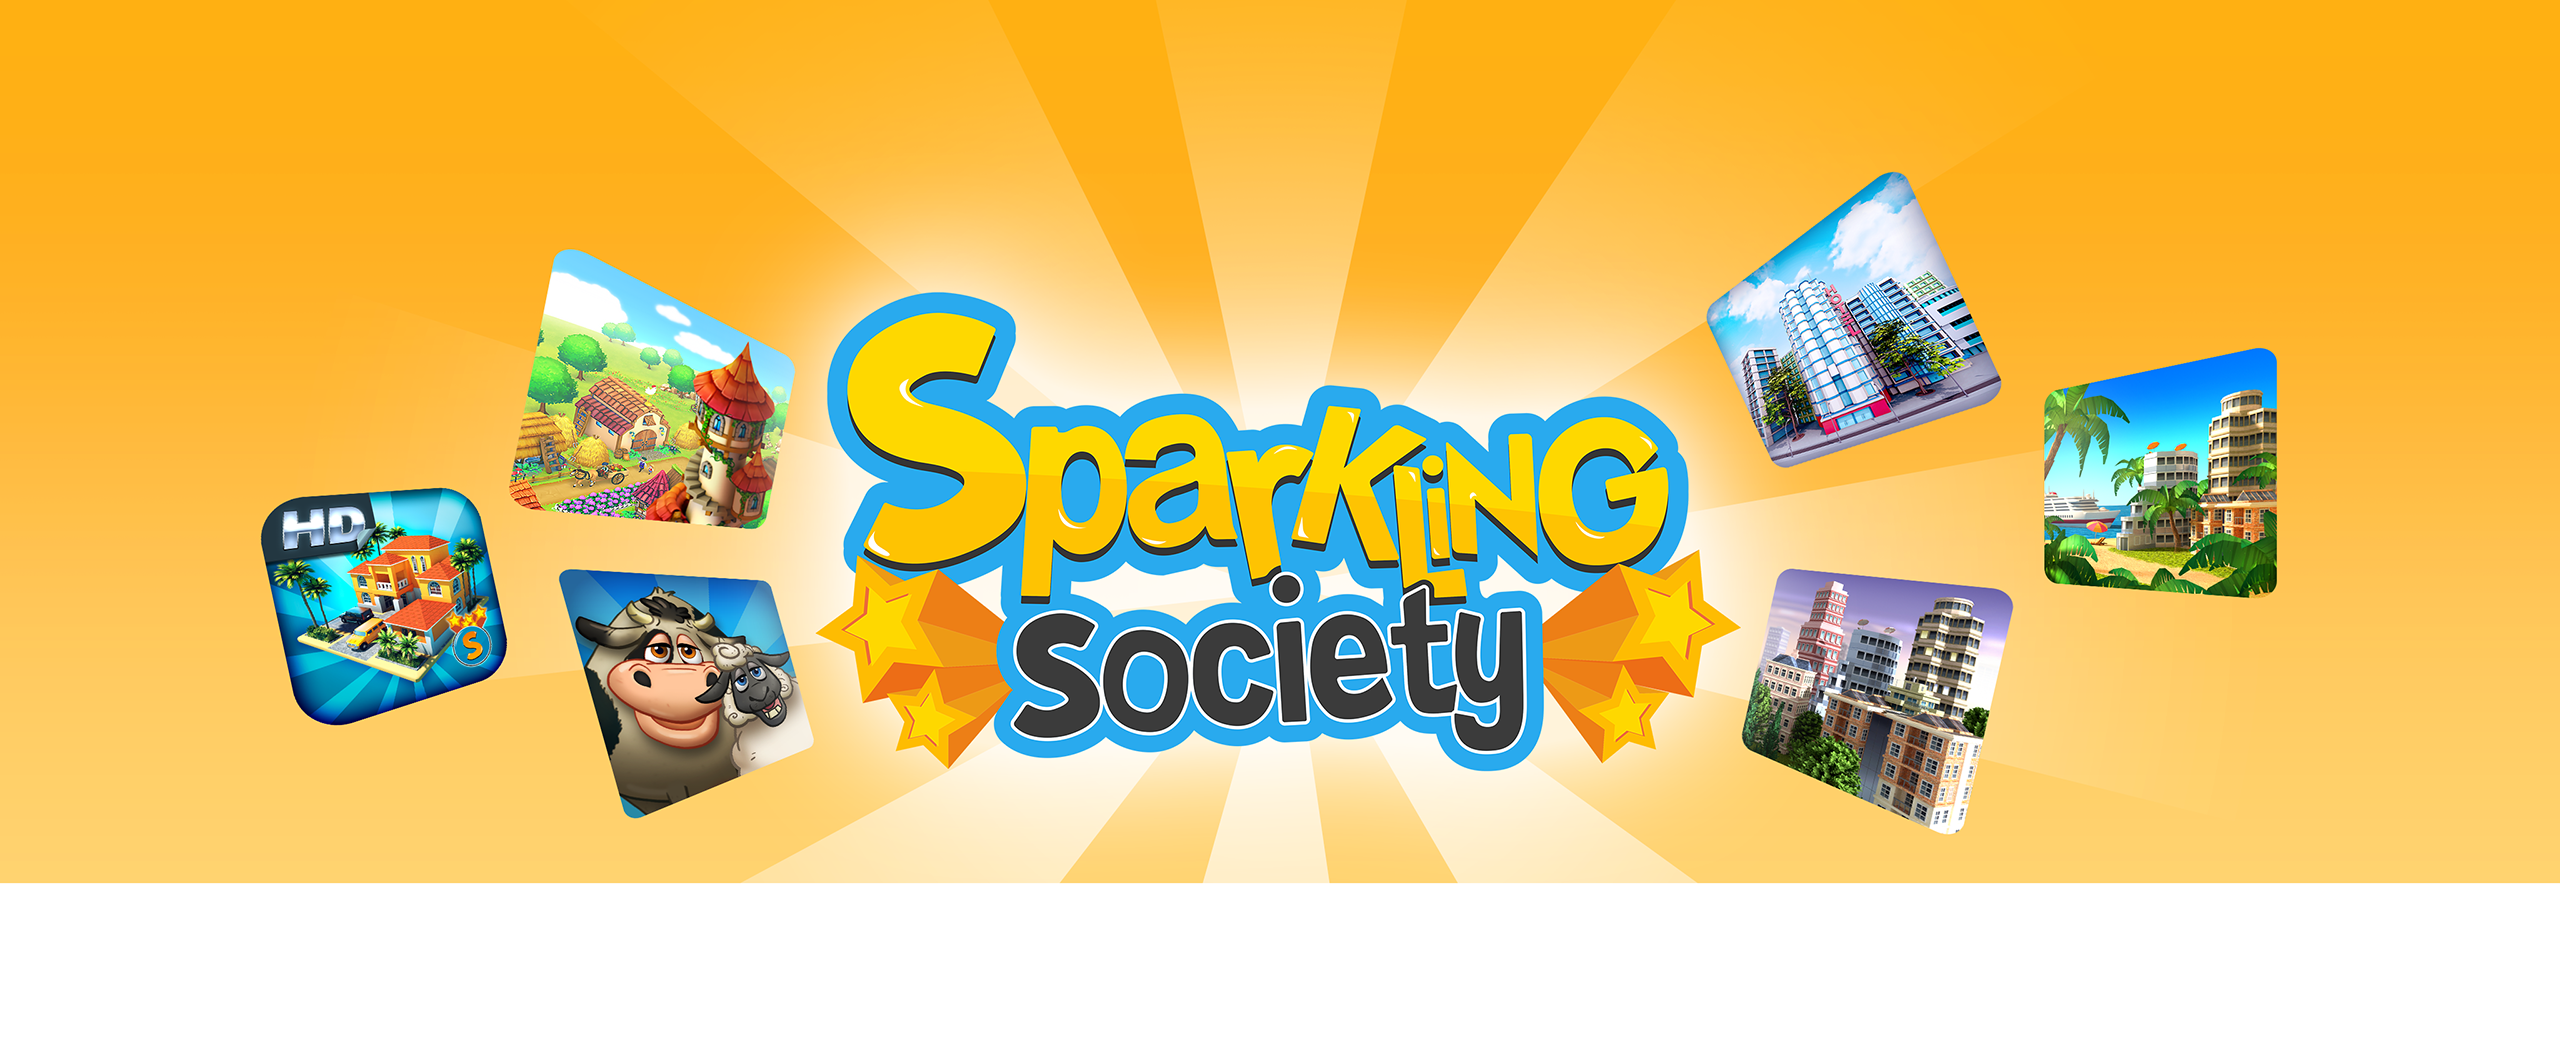 Welcome To The Sparkling Society